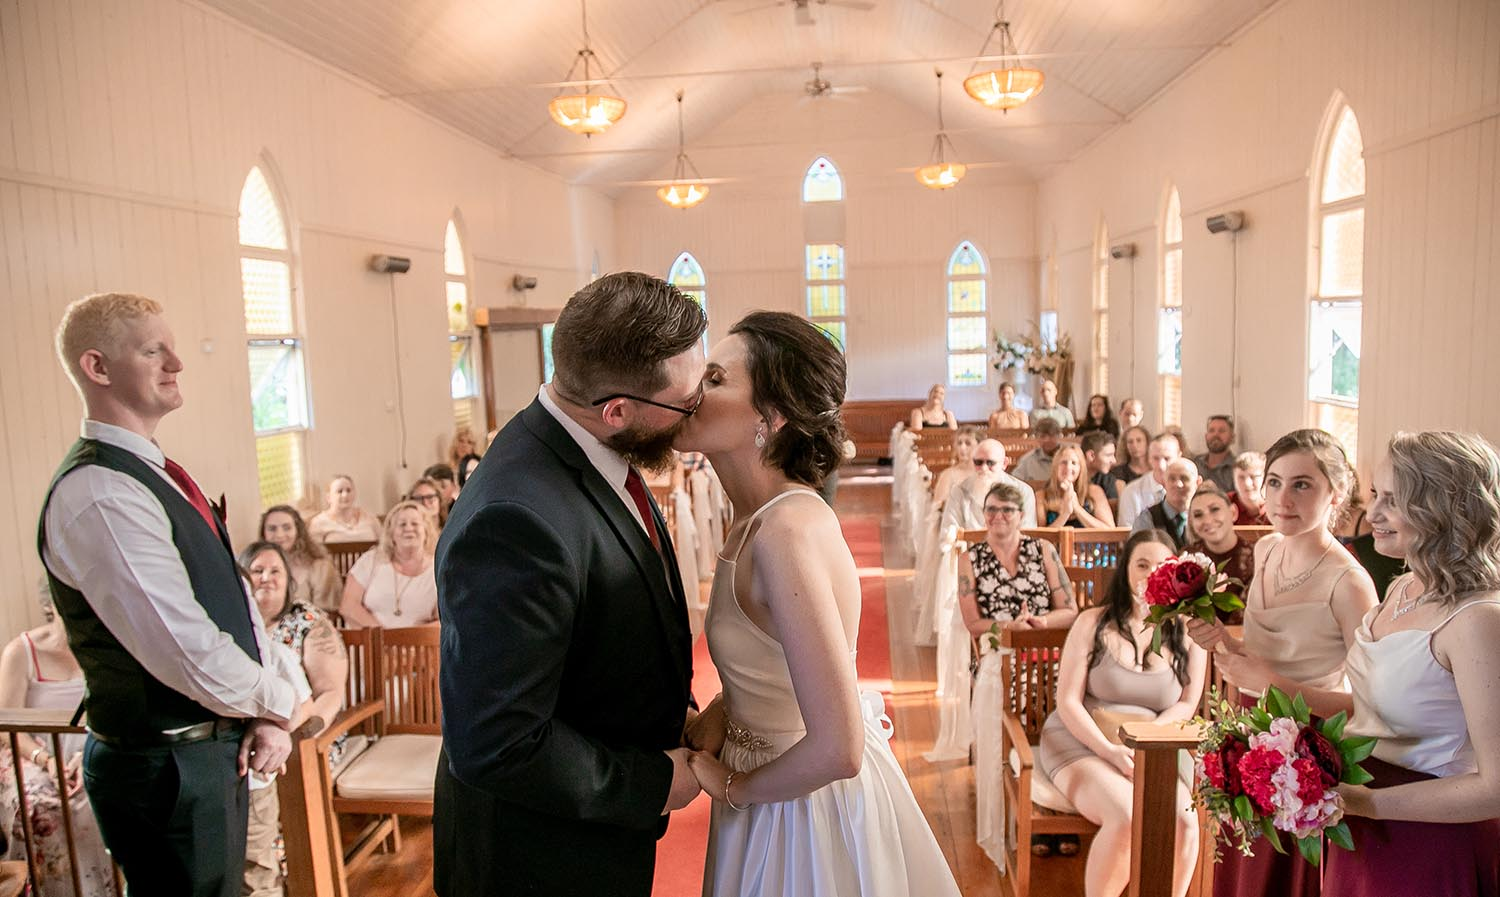 Wedding Photography - First Kiss as husband & wife